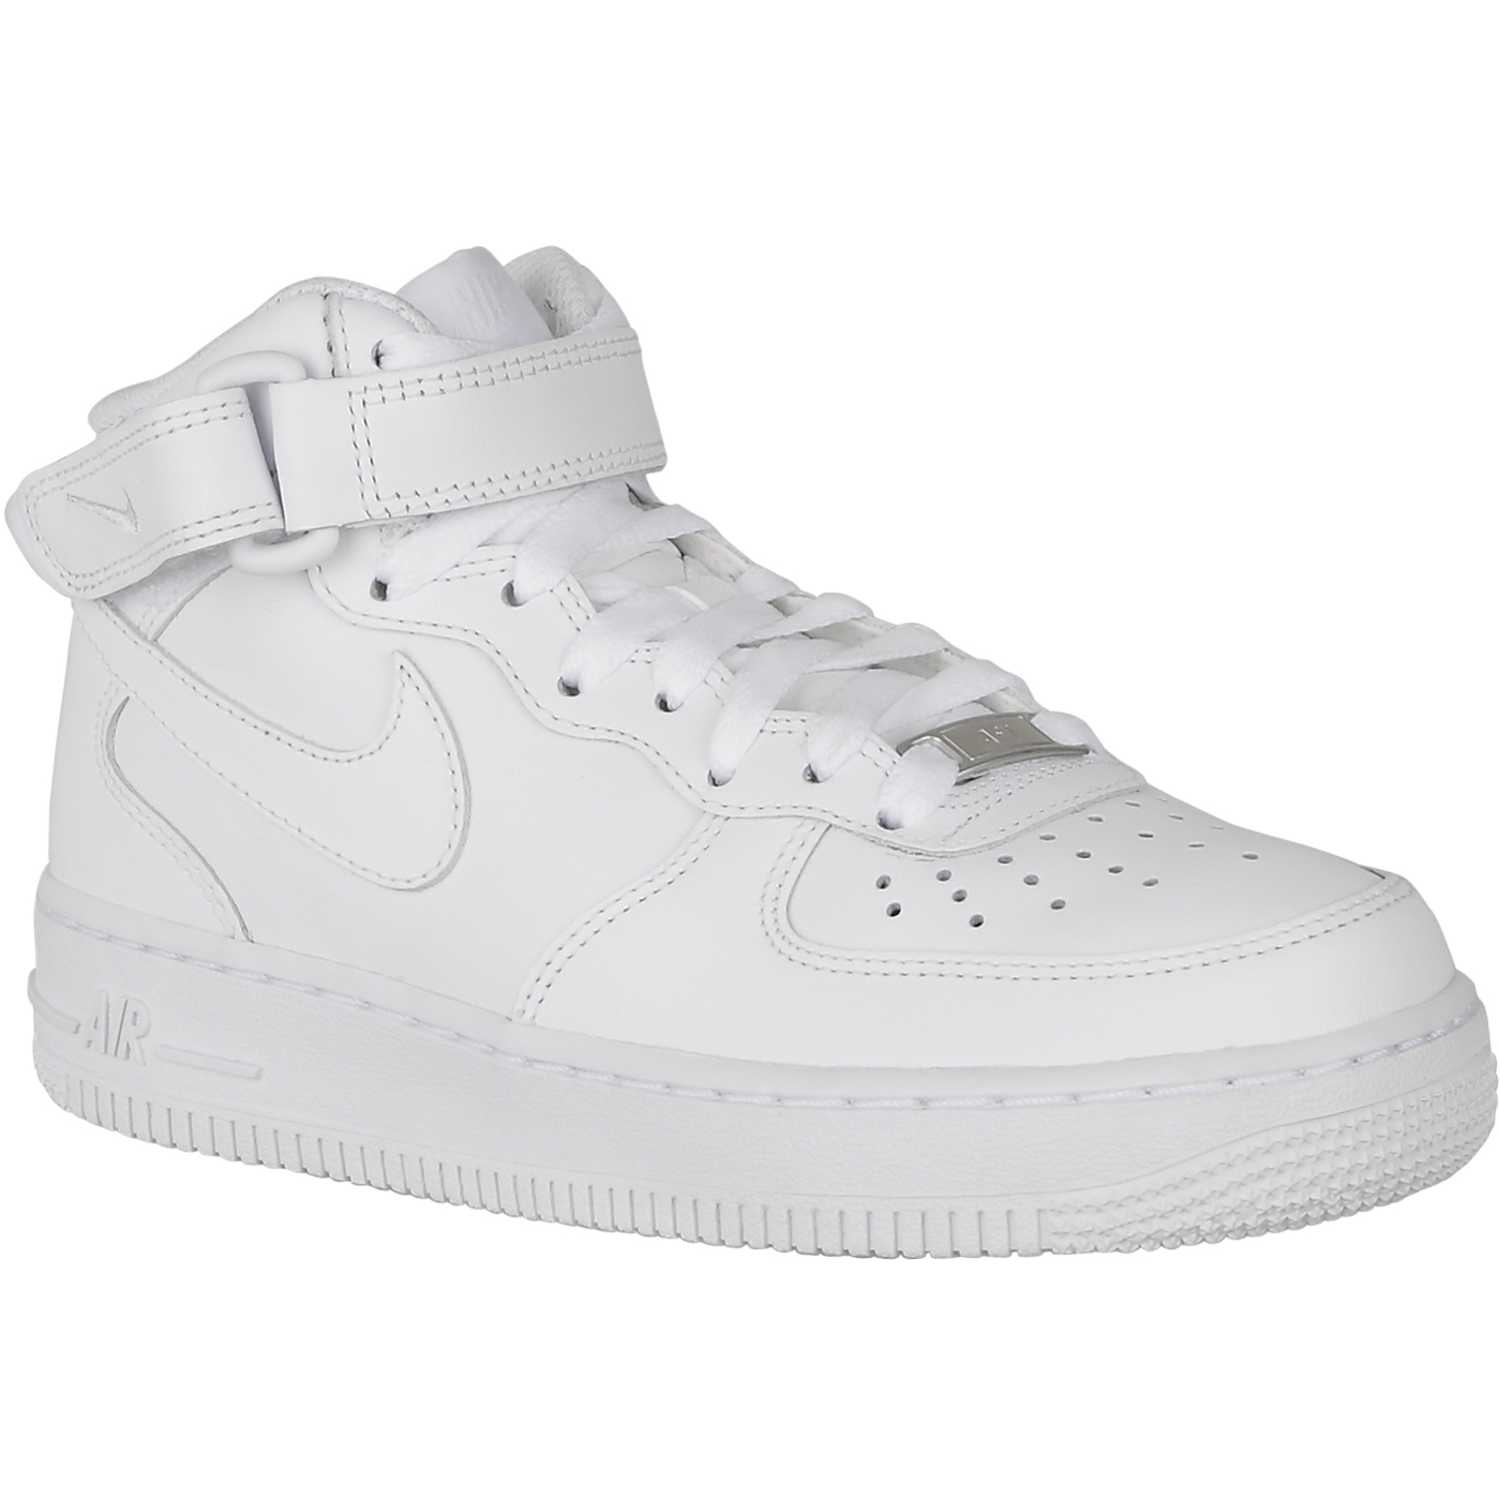 online store 315d4 9a92b Zapatilla de Mujer Nike Blanco wmns air force 1 07 mid